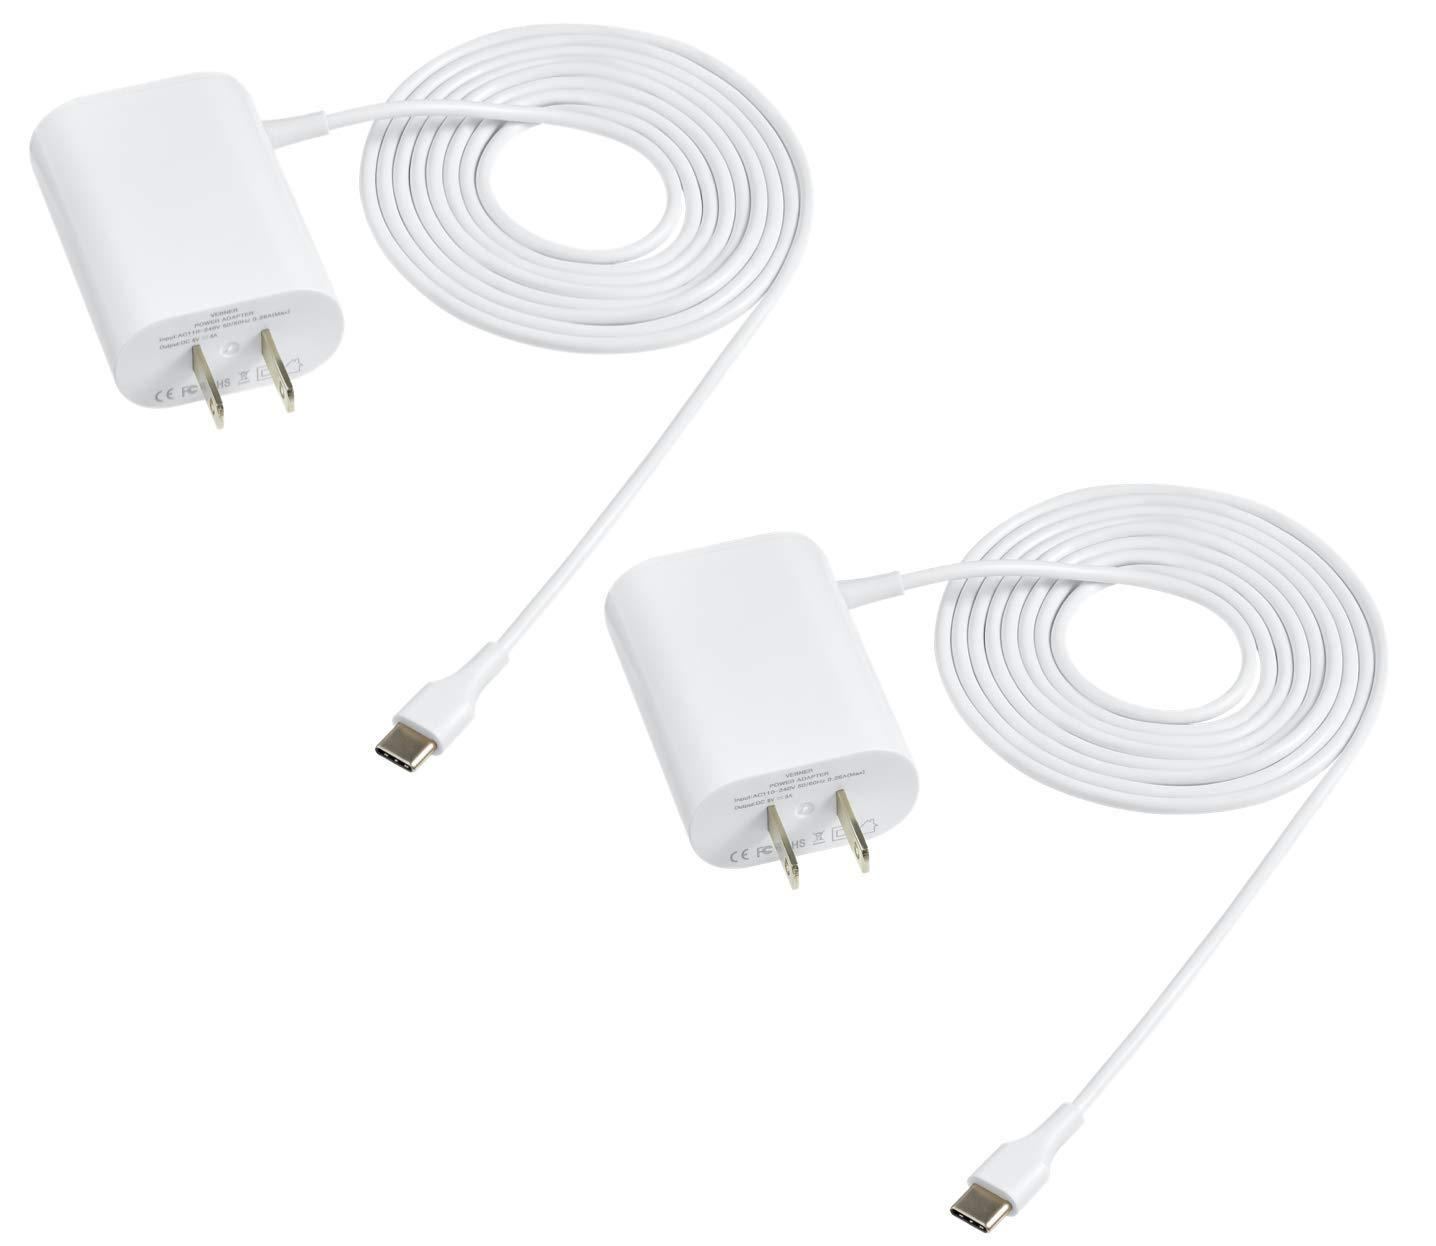 Vebner 6ft Power Adapter Compatible with Google Mesh Home WiFi System Power Cord - USB Type C. Also Compatible with Google Pixel Phone - 2-Pack